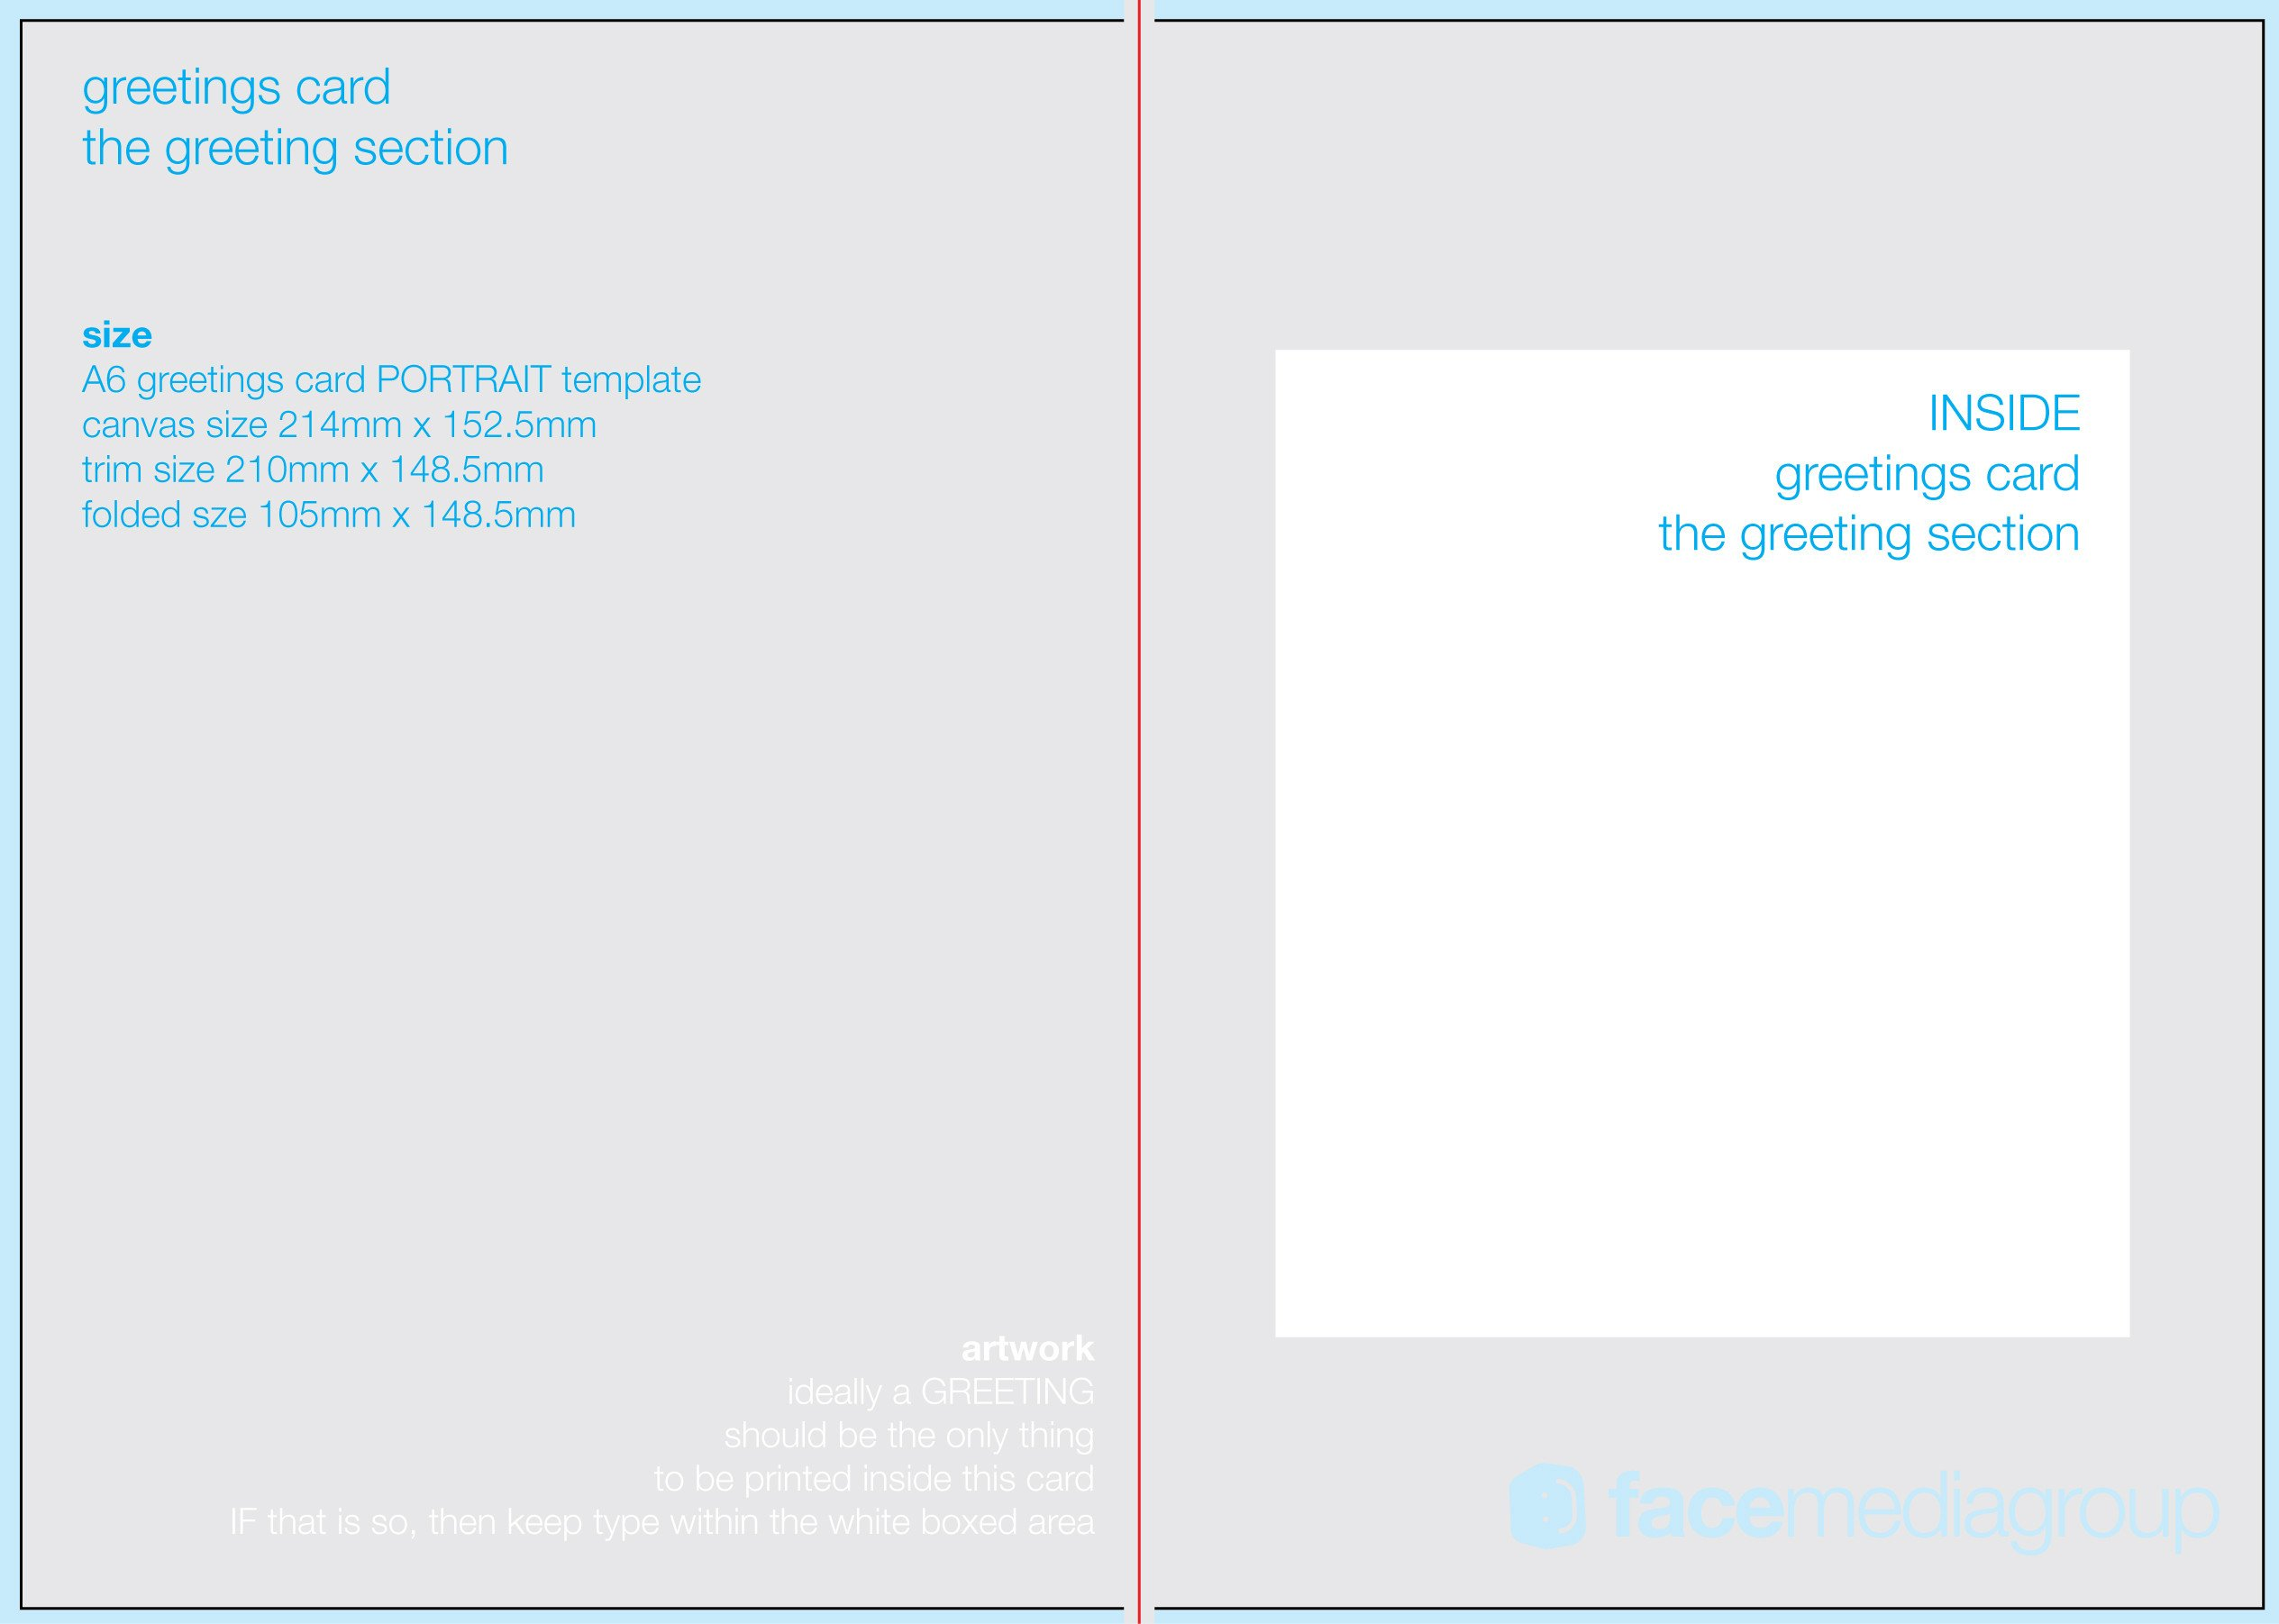 Printable Greetings Cards Templates Free Blank Greetings Card Artwork Templates for Download